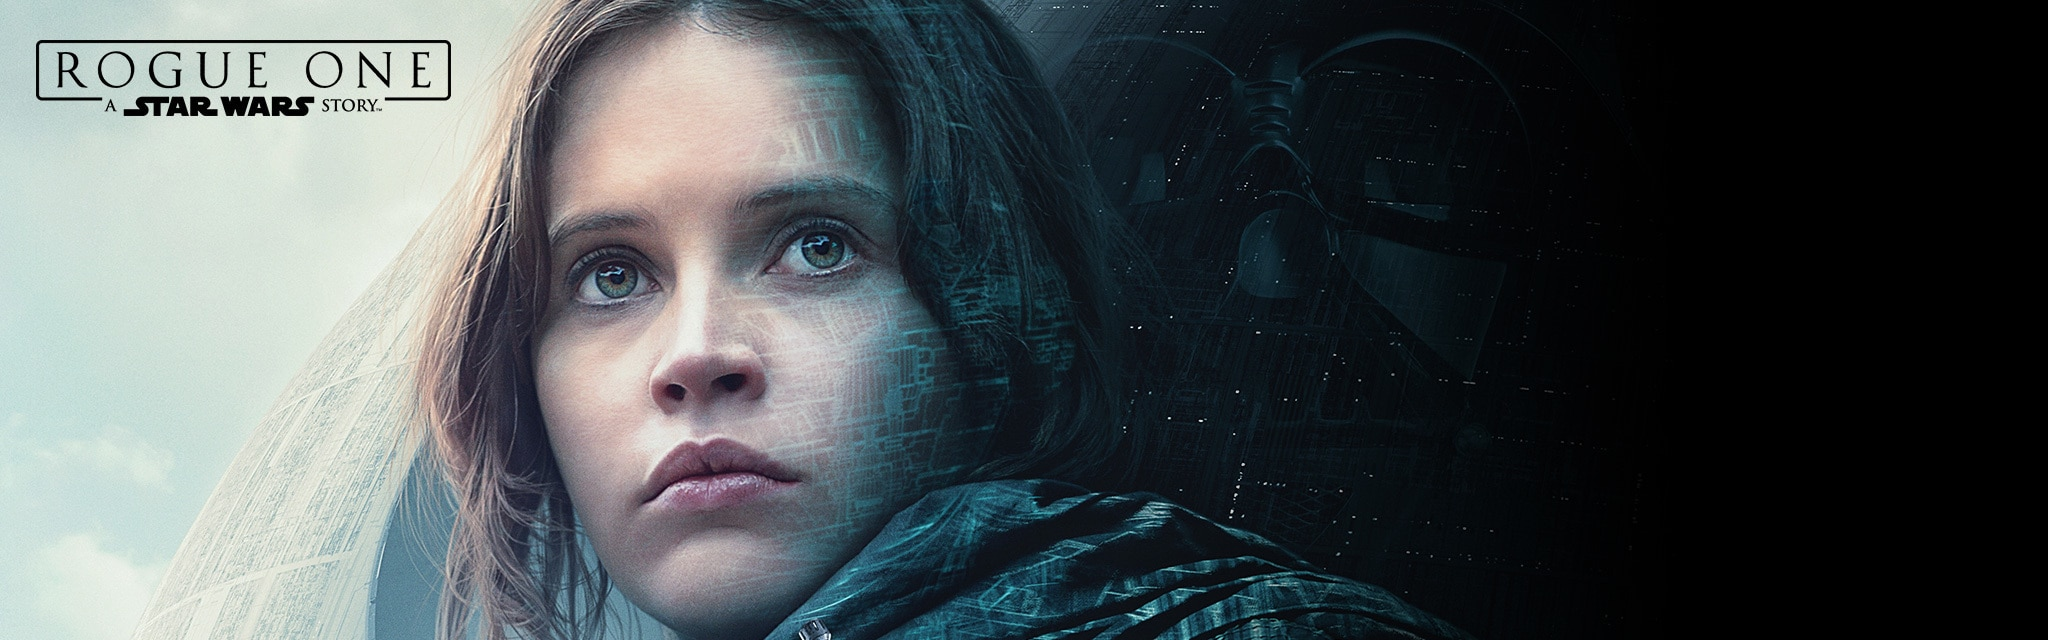 Rogue One - Tickets - Hero